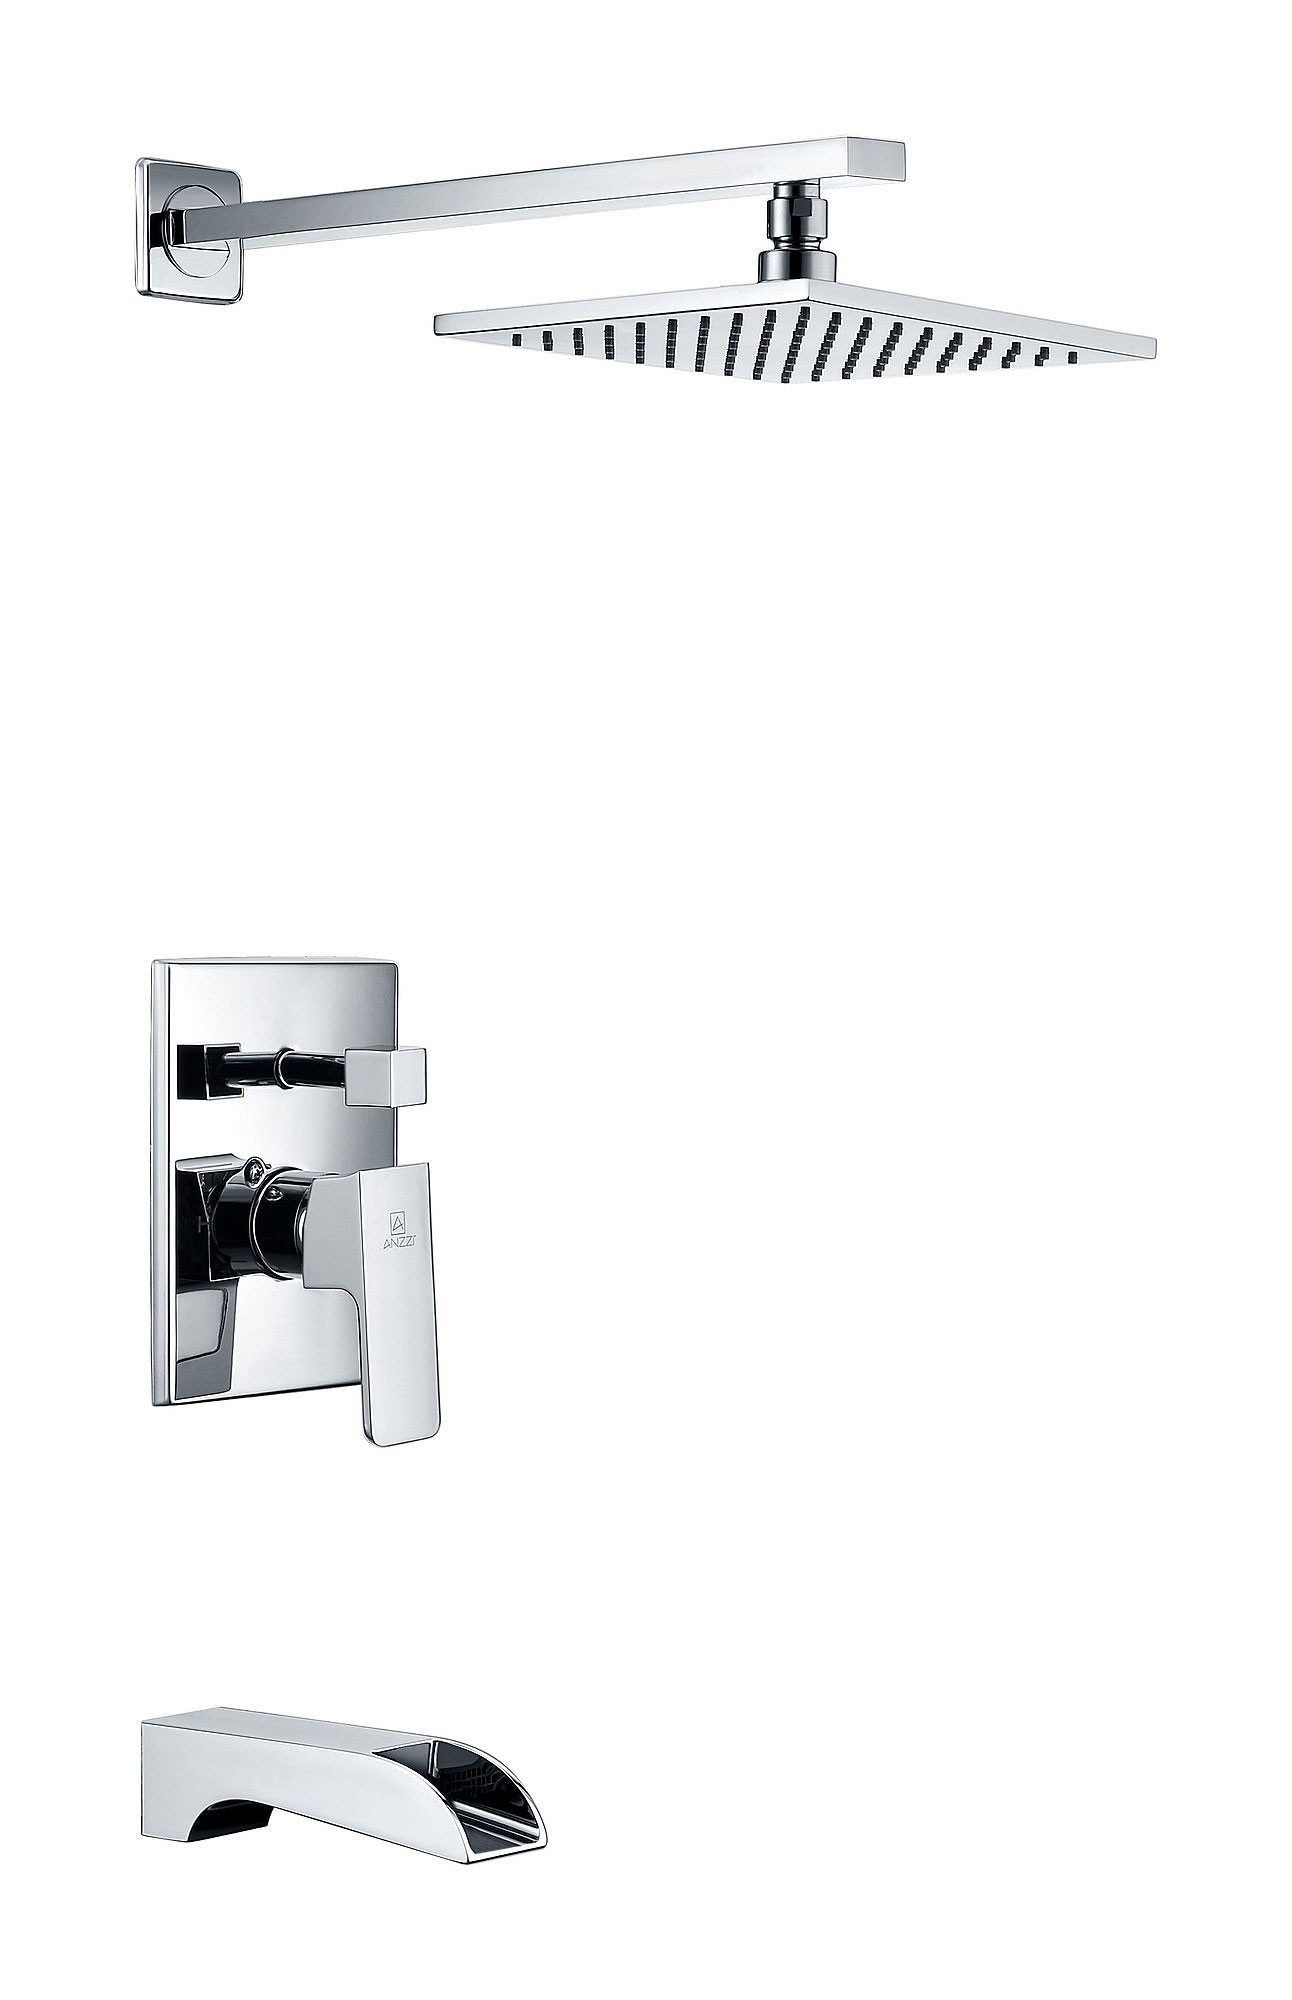 ANZZI SH-AZ037 Mezzo Solid Brass Tub and Shower Faucet In Polished Chrome